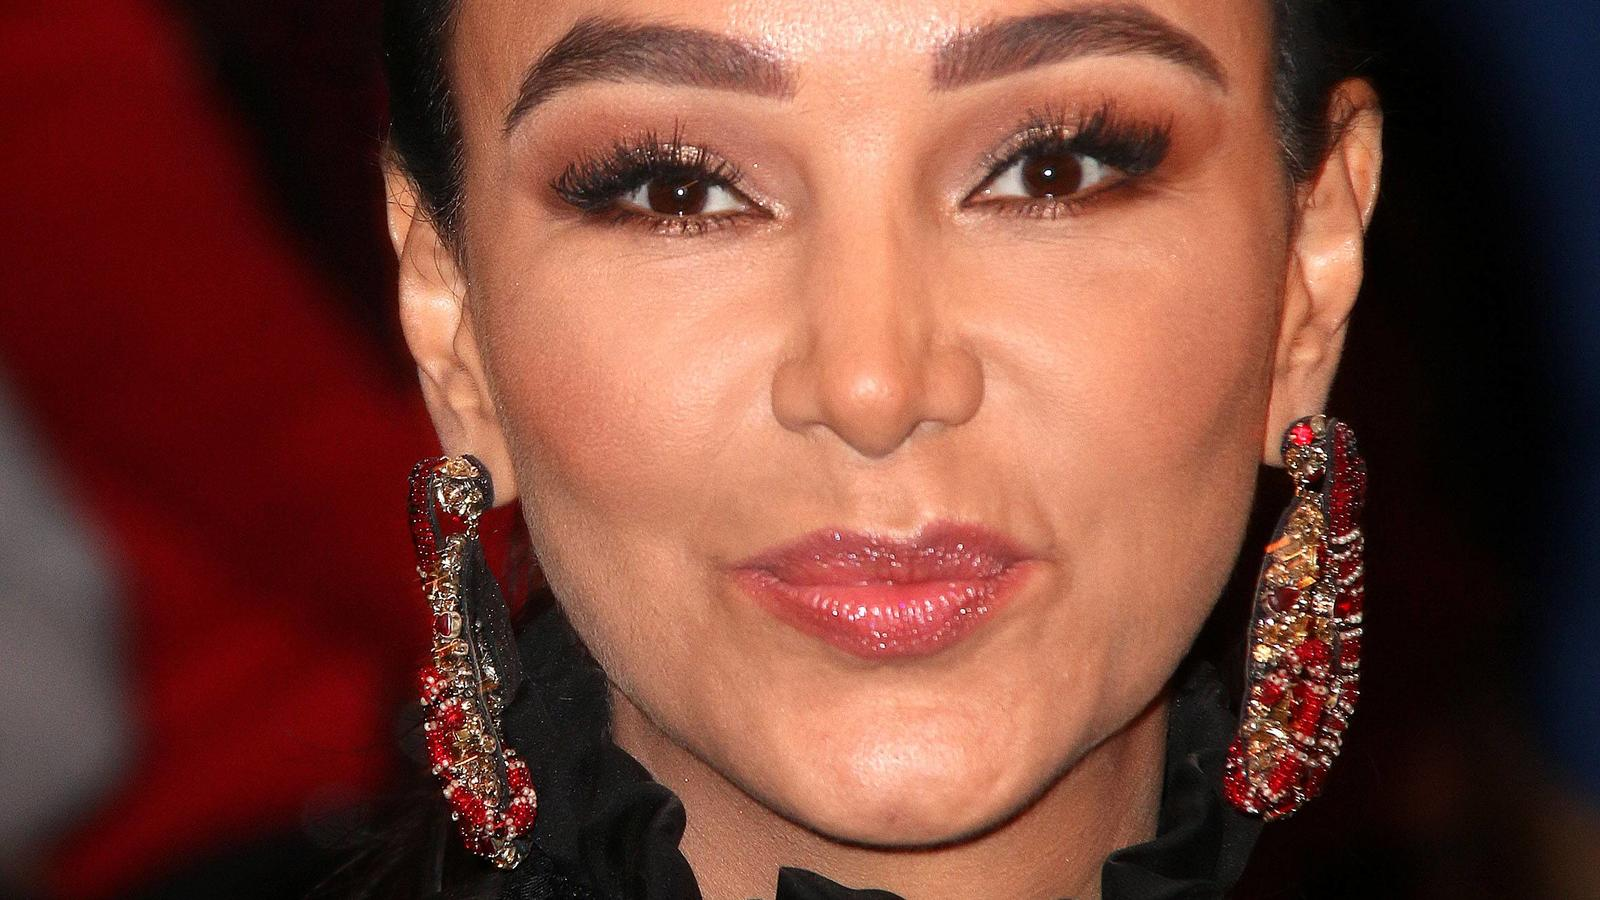 Verona Pooth zu Gast in der M.Lanz (ZDF) Talkshow am 27.02.2019 in Hamburg M.Lanz (ZDF) Talkshow am 27.02.2019 in Hamburg *** Verona Pooth guest at the M Lanz ZDF talk show on 27 02 2019 in Hamburg M Lanz ZDF talk show on 27 02 2019 in Hamburg PUBLIC